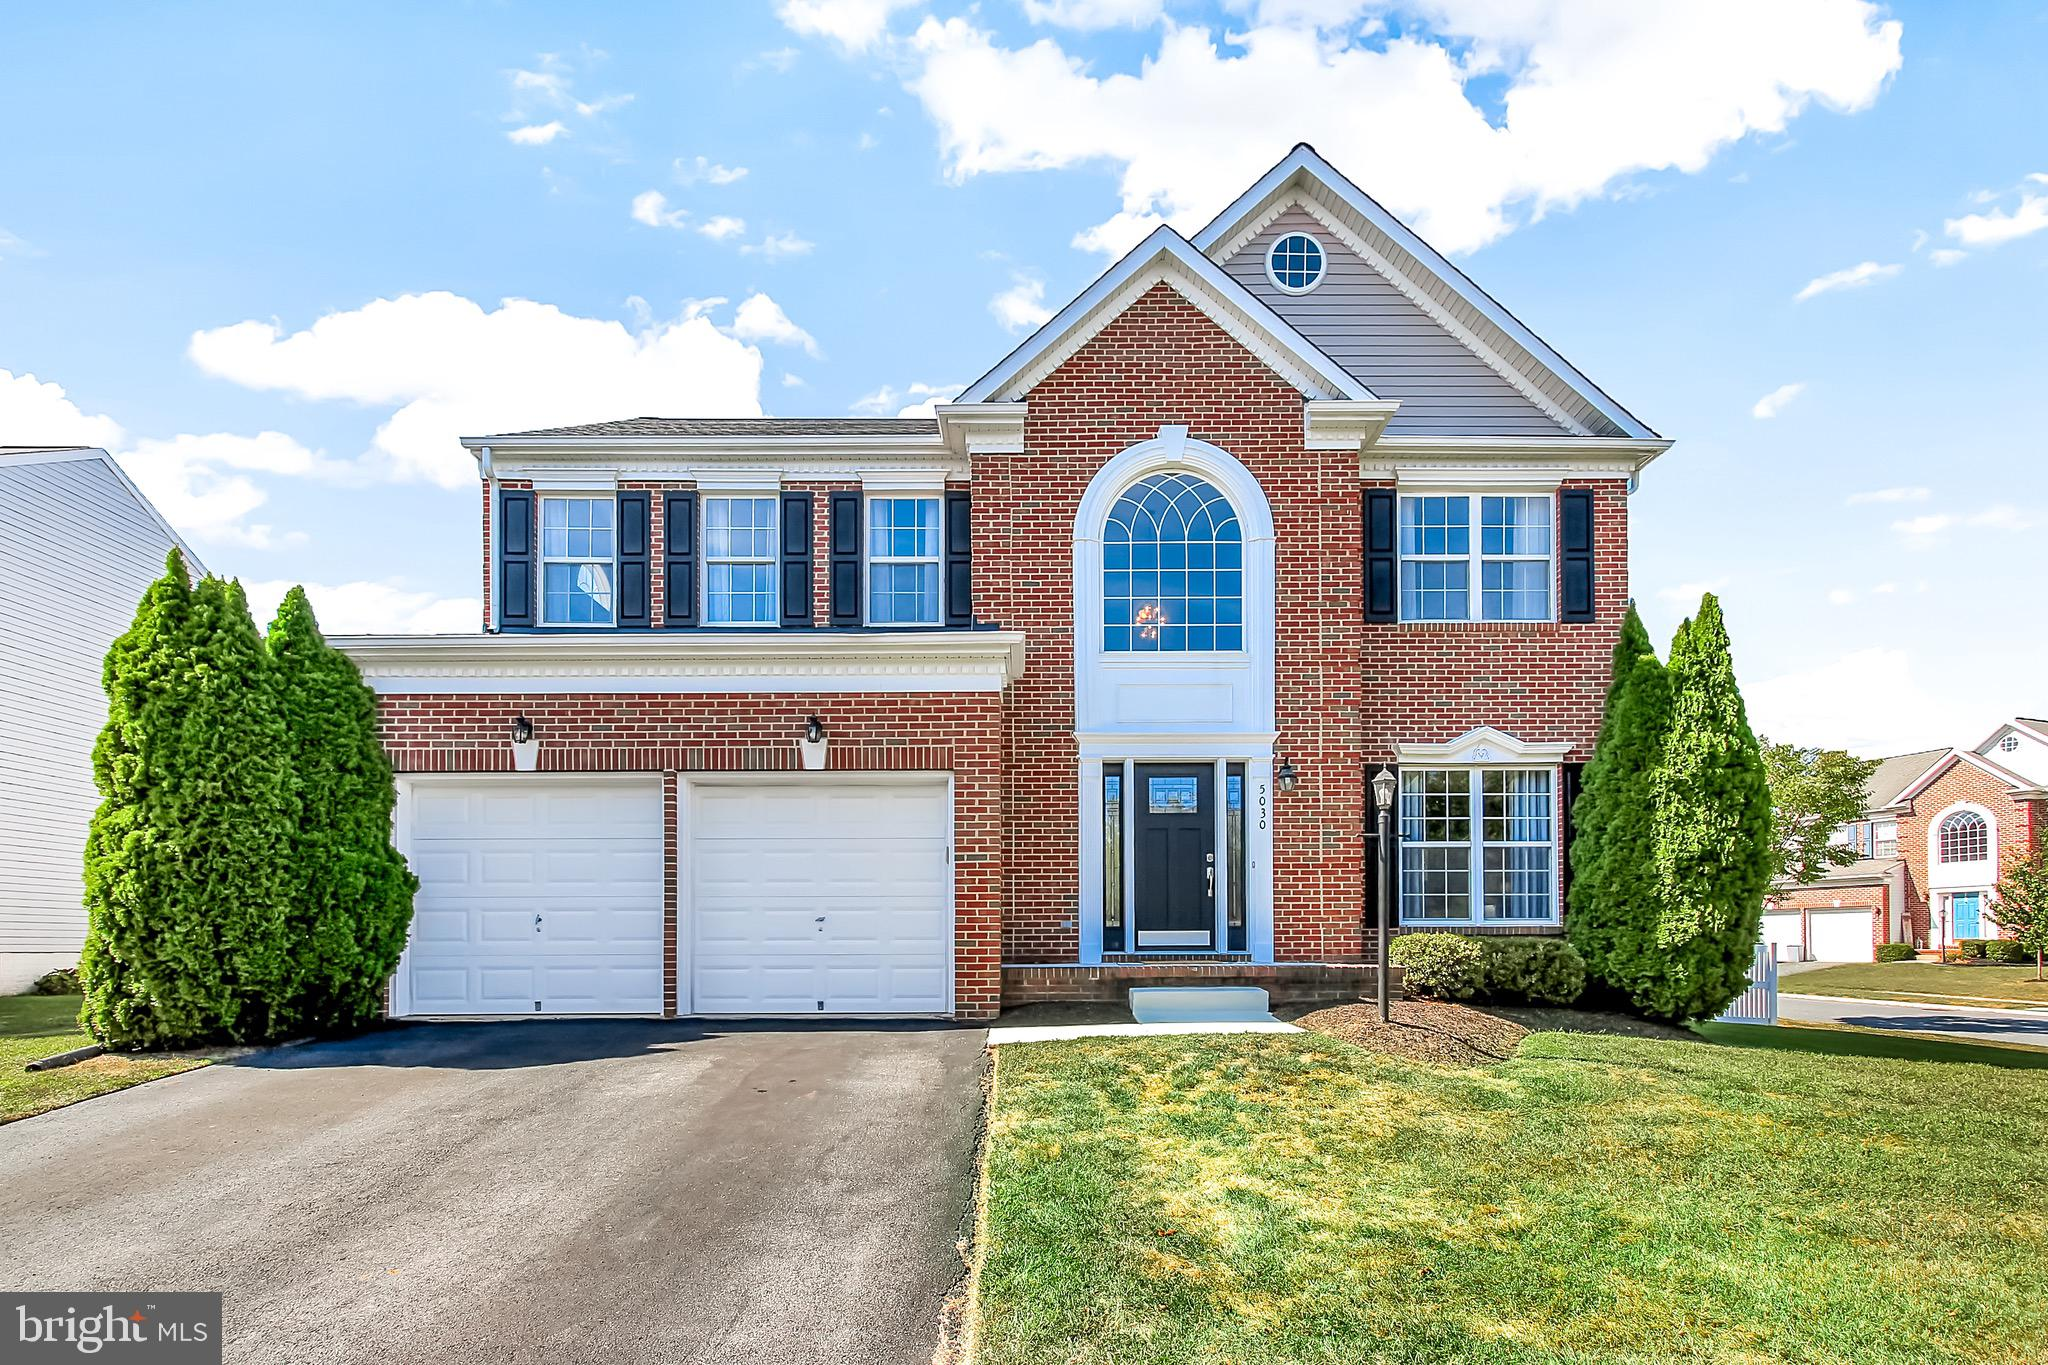 5030 FORGE HAVEN DRIVE, PERRY HALL, MD 21128